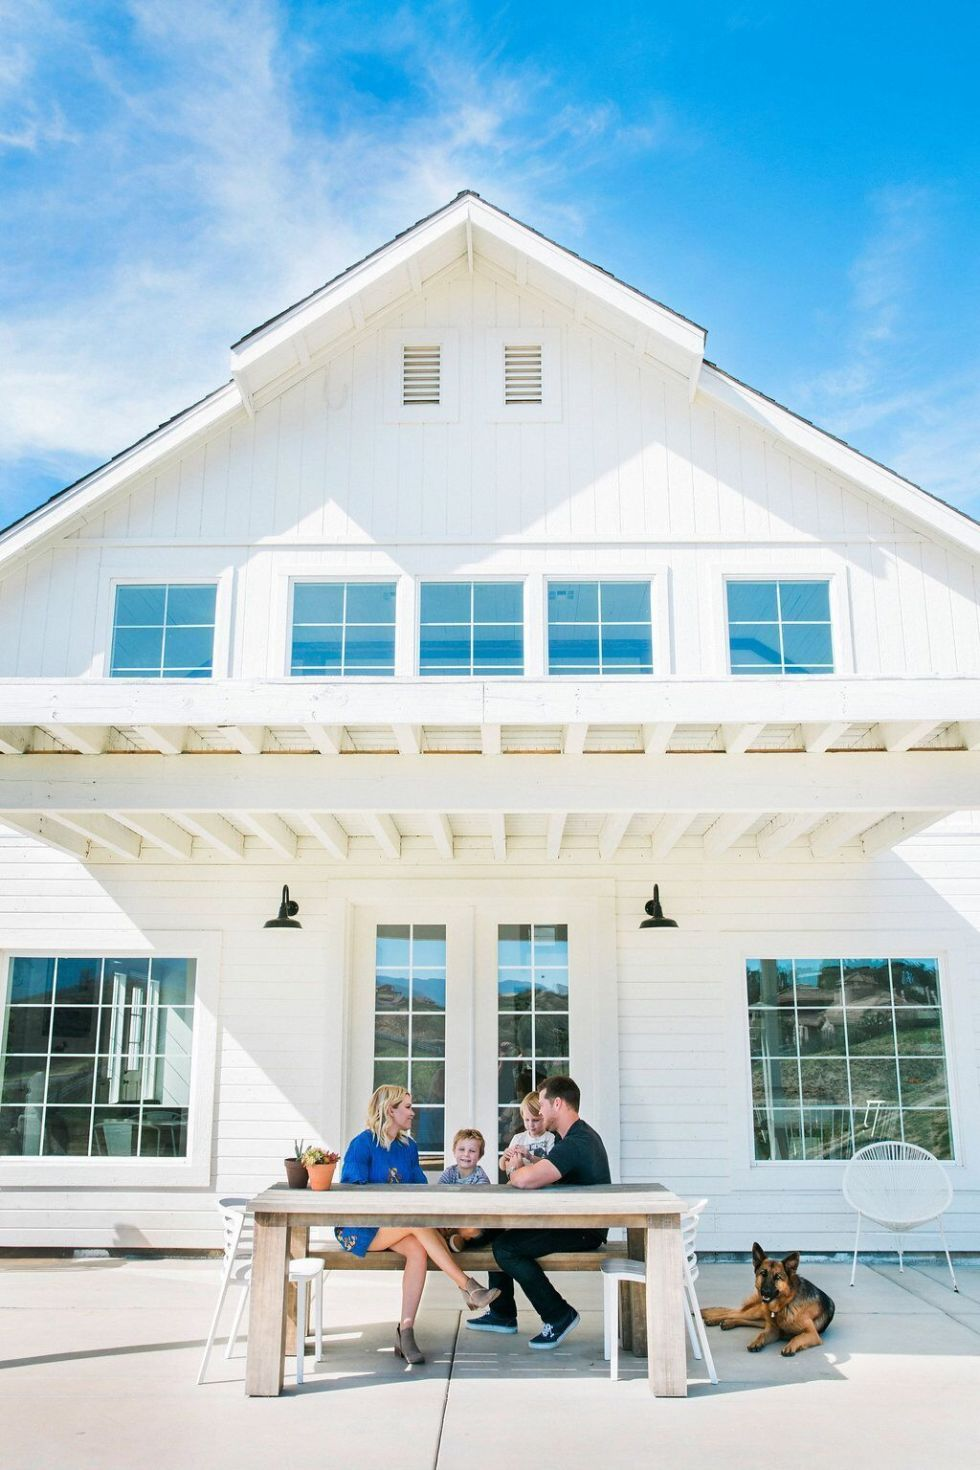 The breathtaking white barn with its many windows and clean siding is now an architectural masterpiece